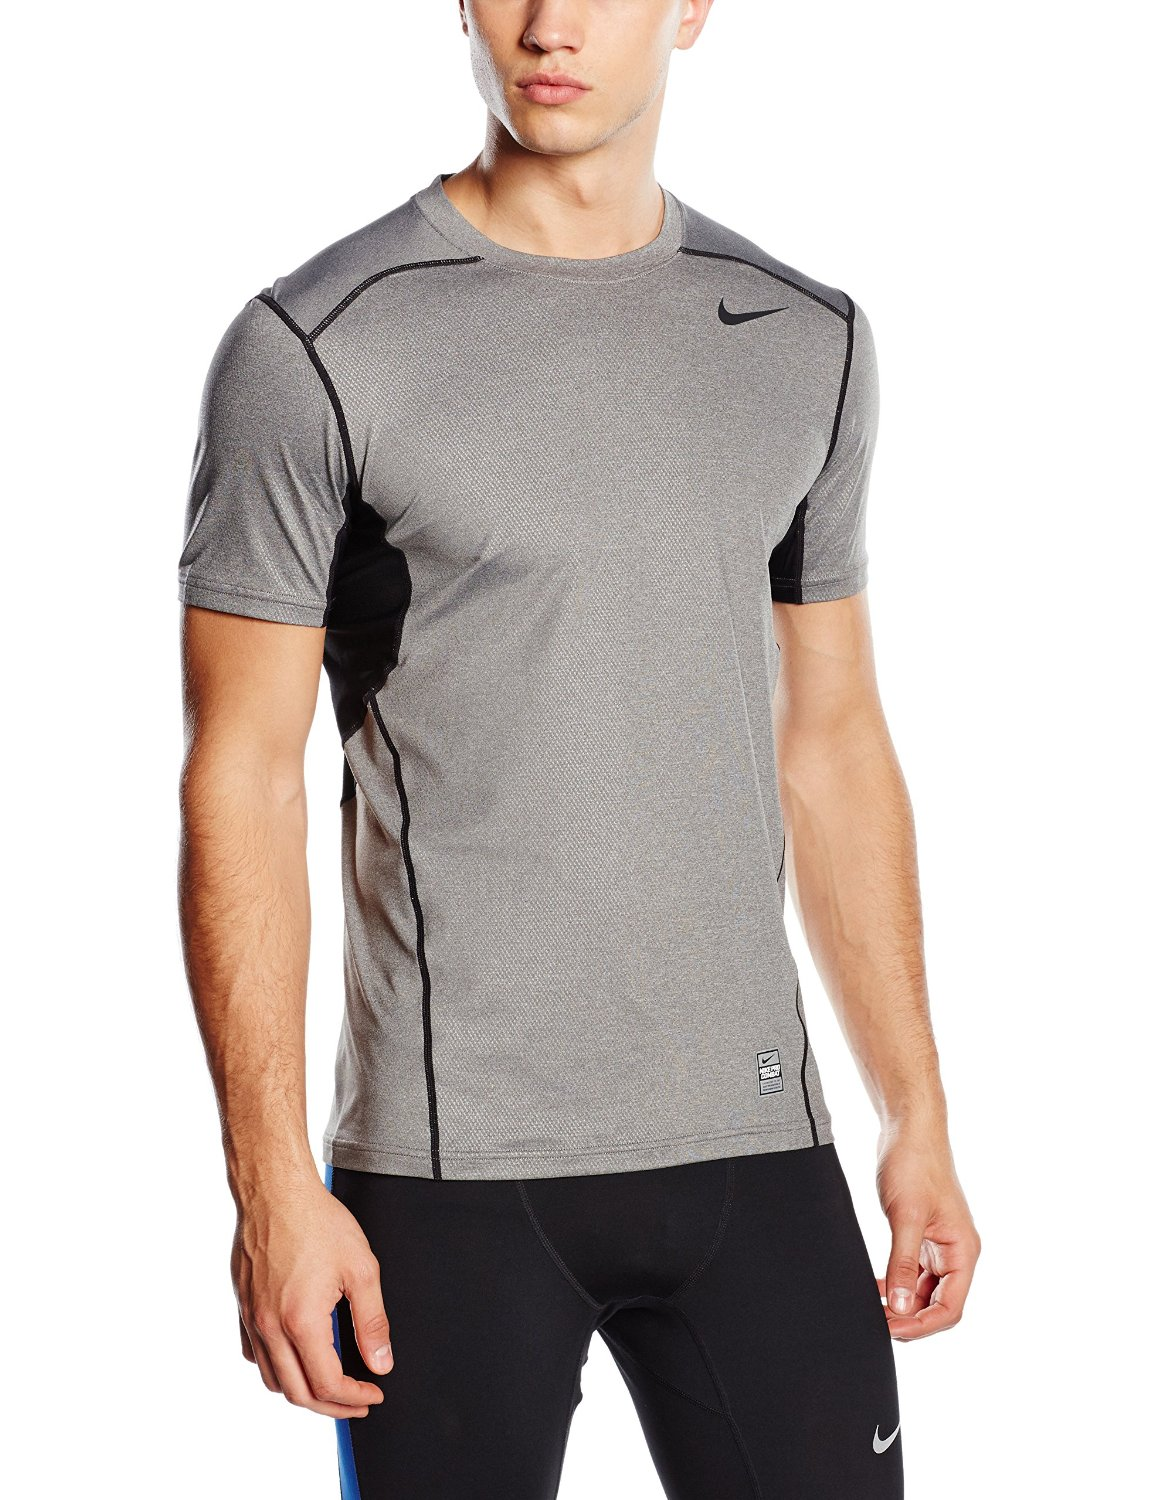 NIKE Hypercool Fitted Short Sleeve Crew